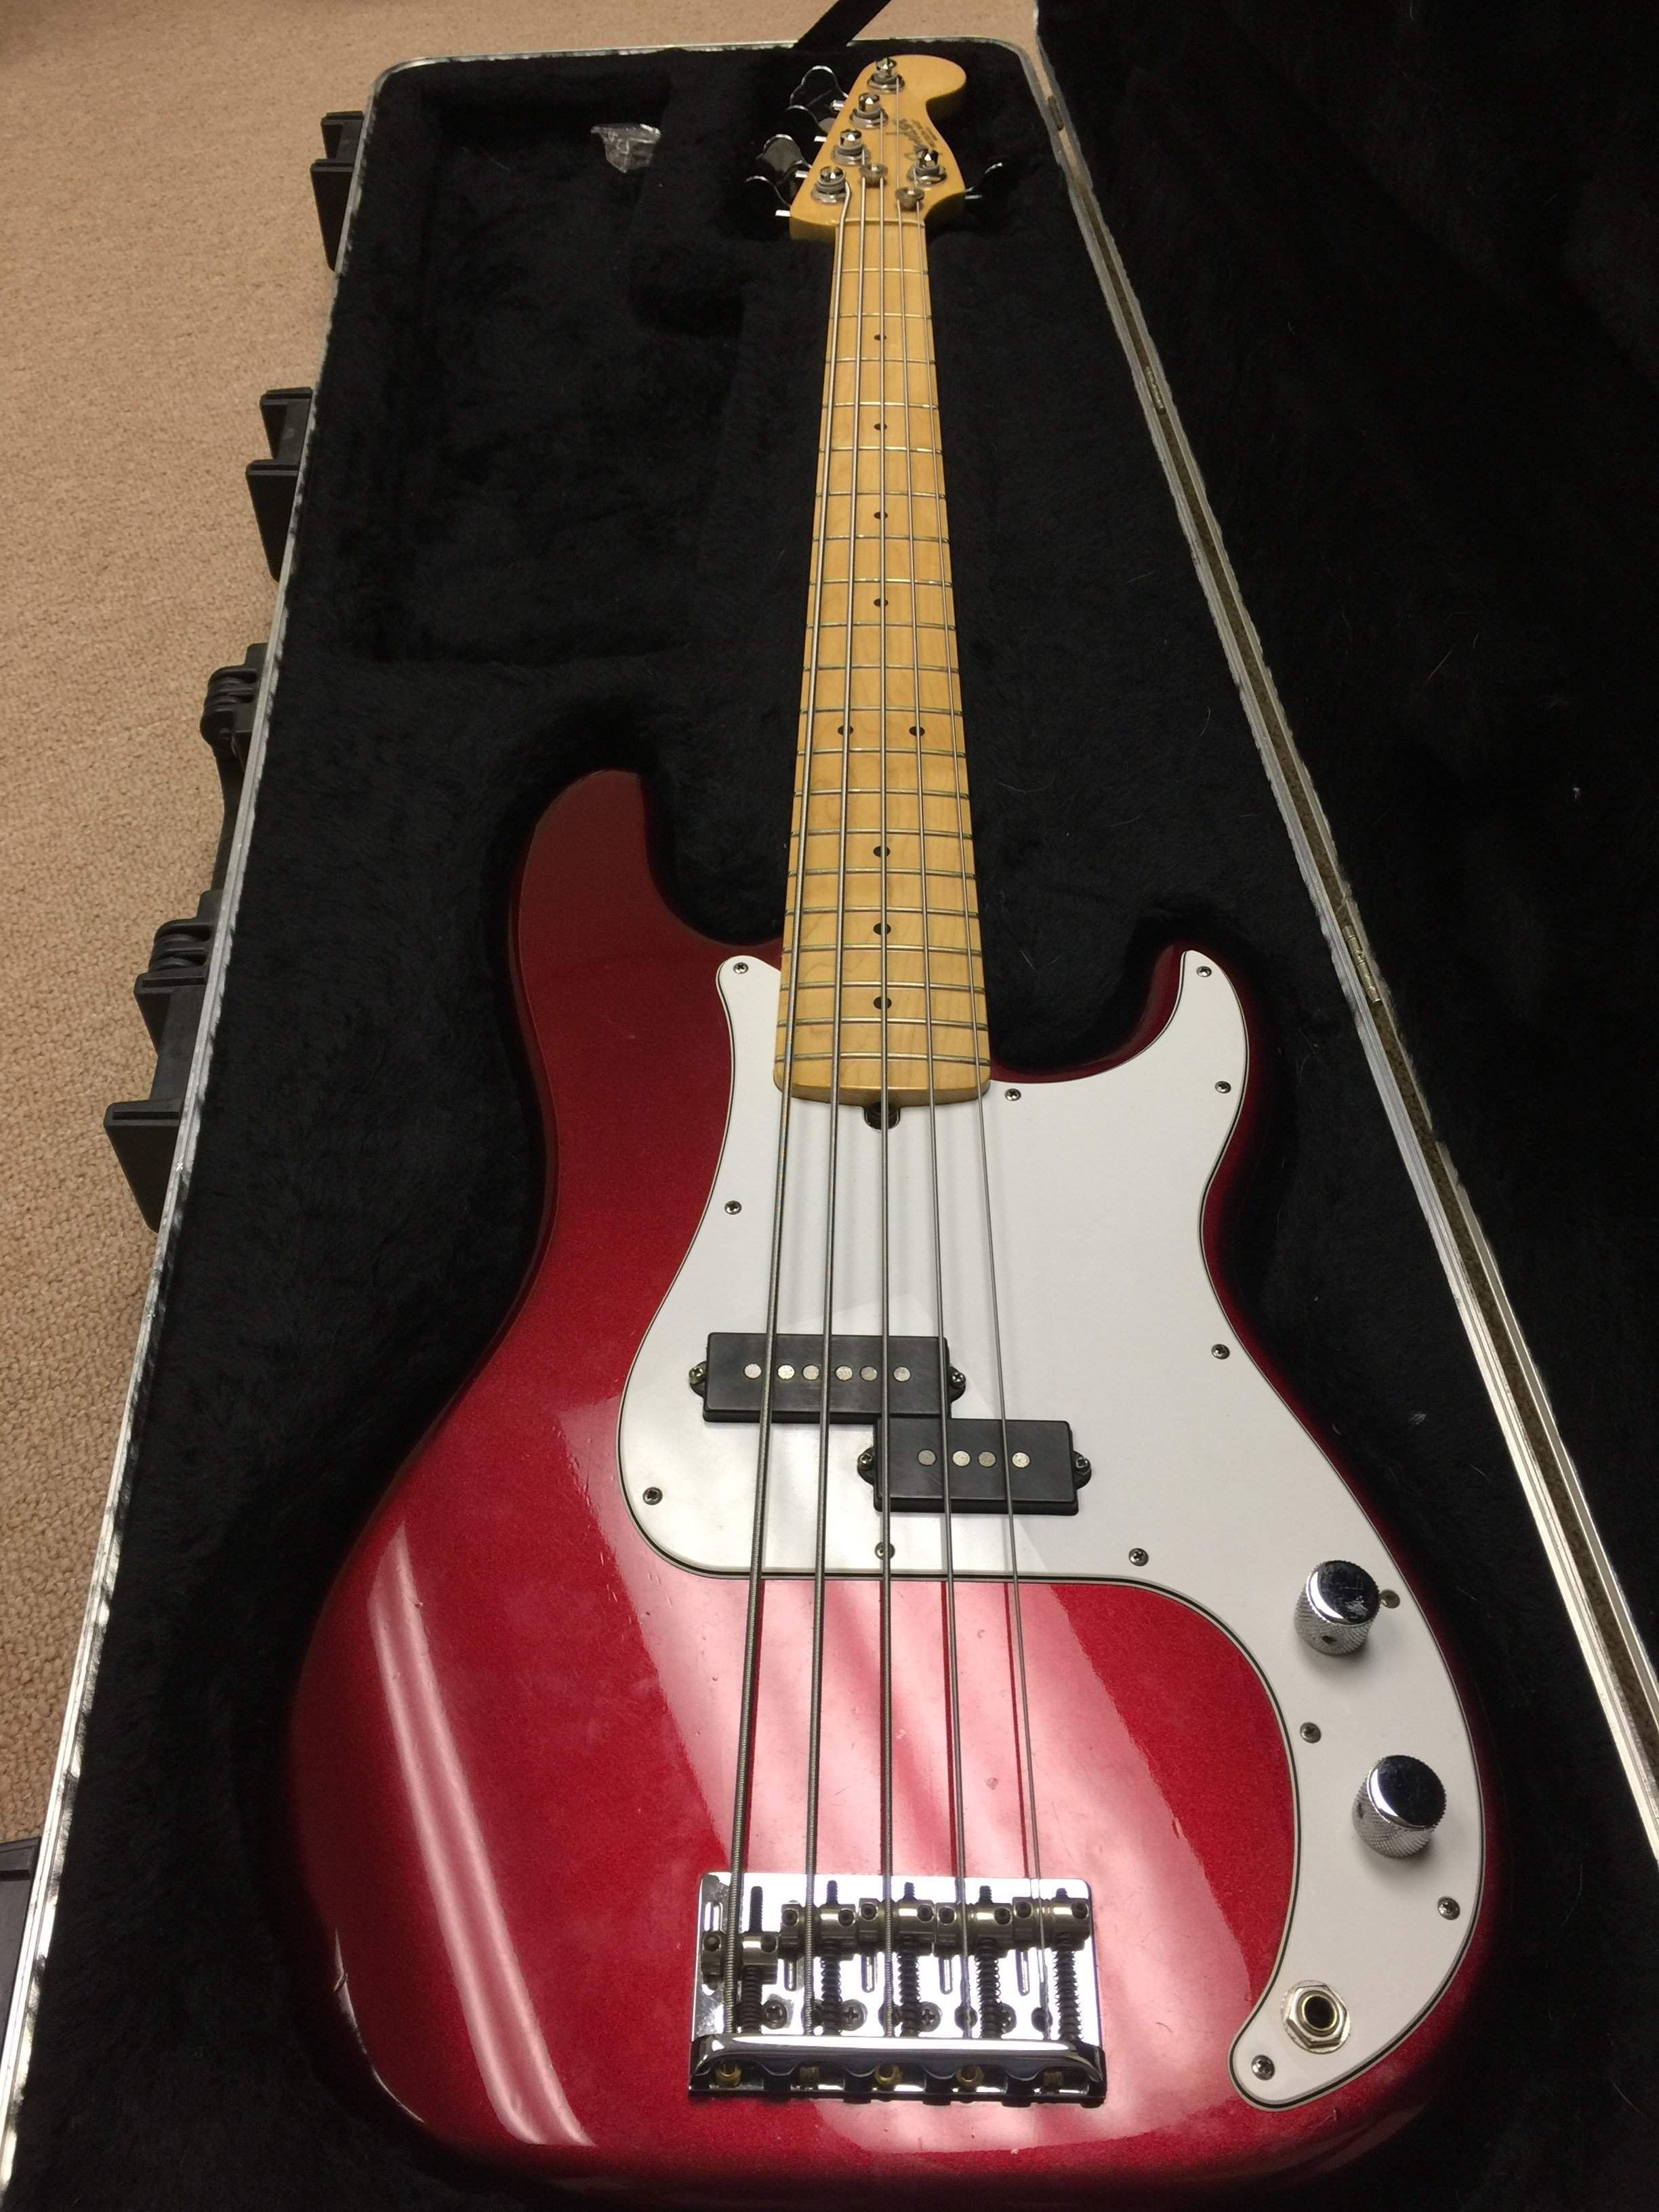 sold 2011 fender american standard precision bass v p5 mystic red. Black Bedroom Furniture Sets. Home Design Ideas